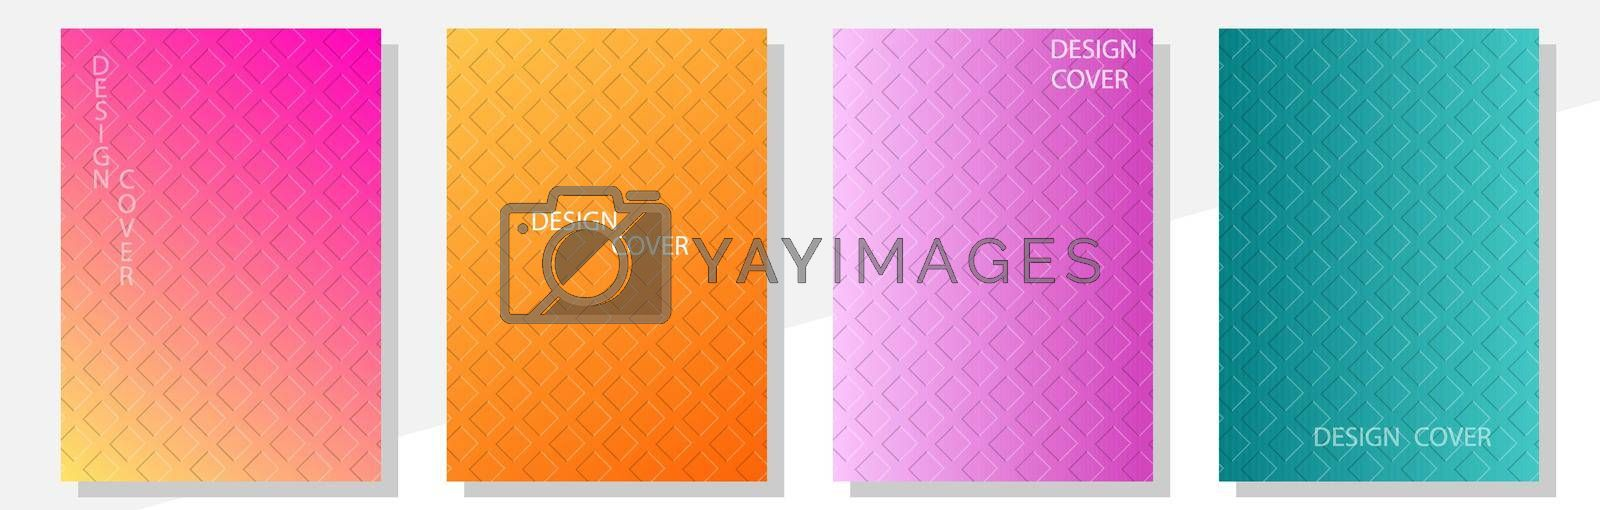 Royalty free image of Geometric cover design templates A-4 format. Editable set of layouts for covers of books, magazines, notebooks, albums, booklets by Grommik